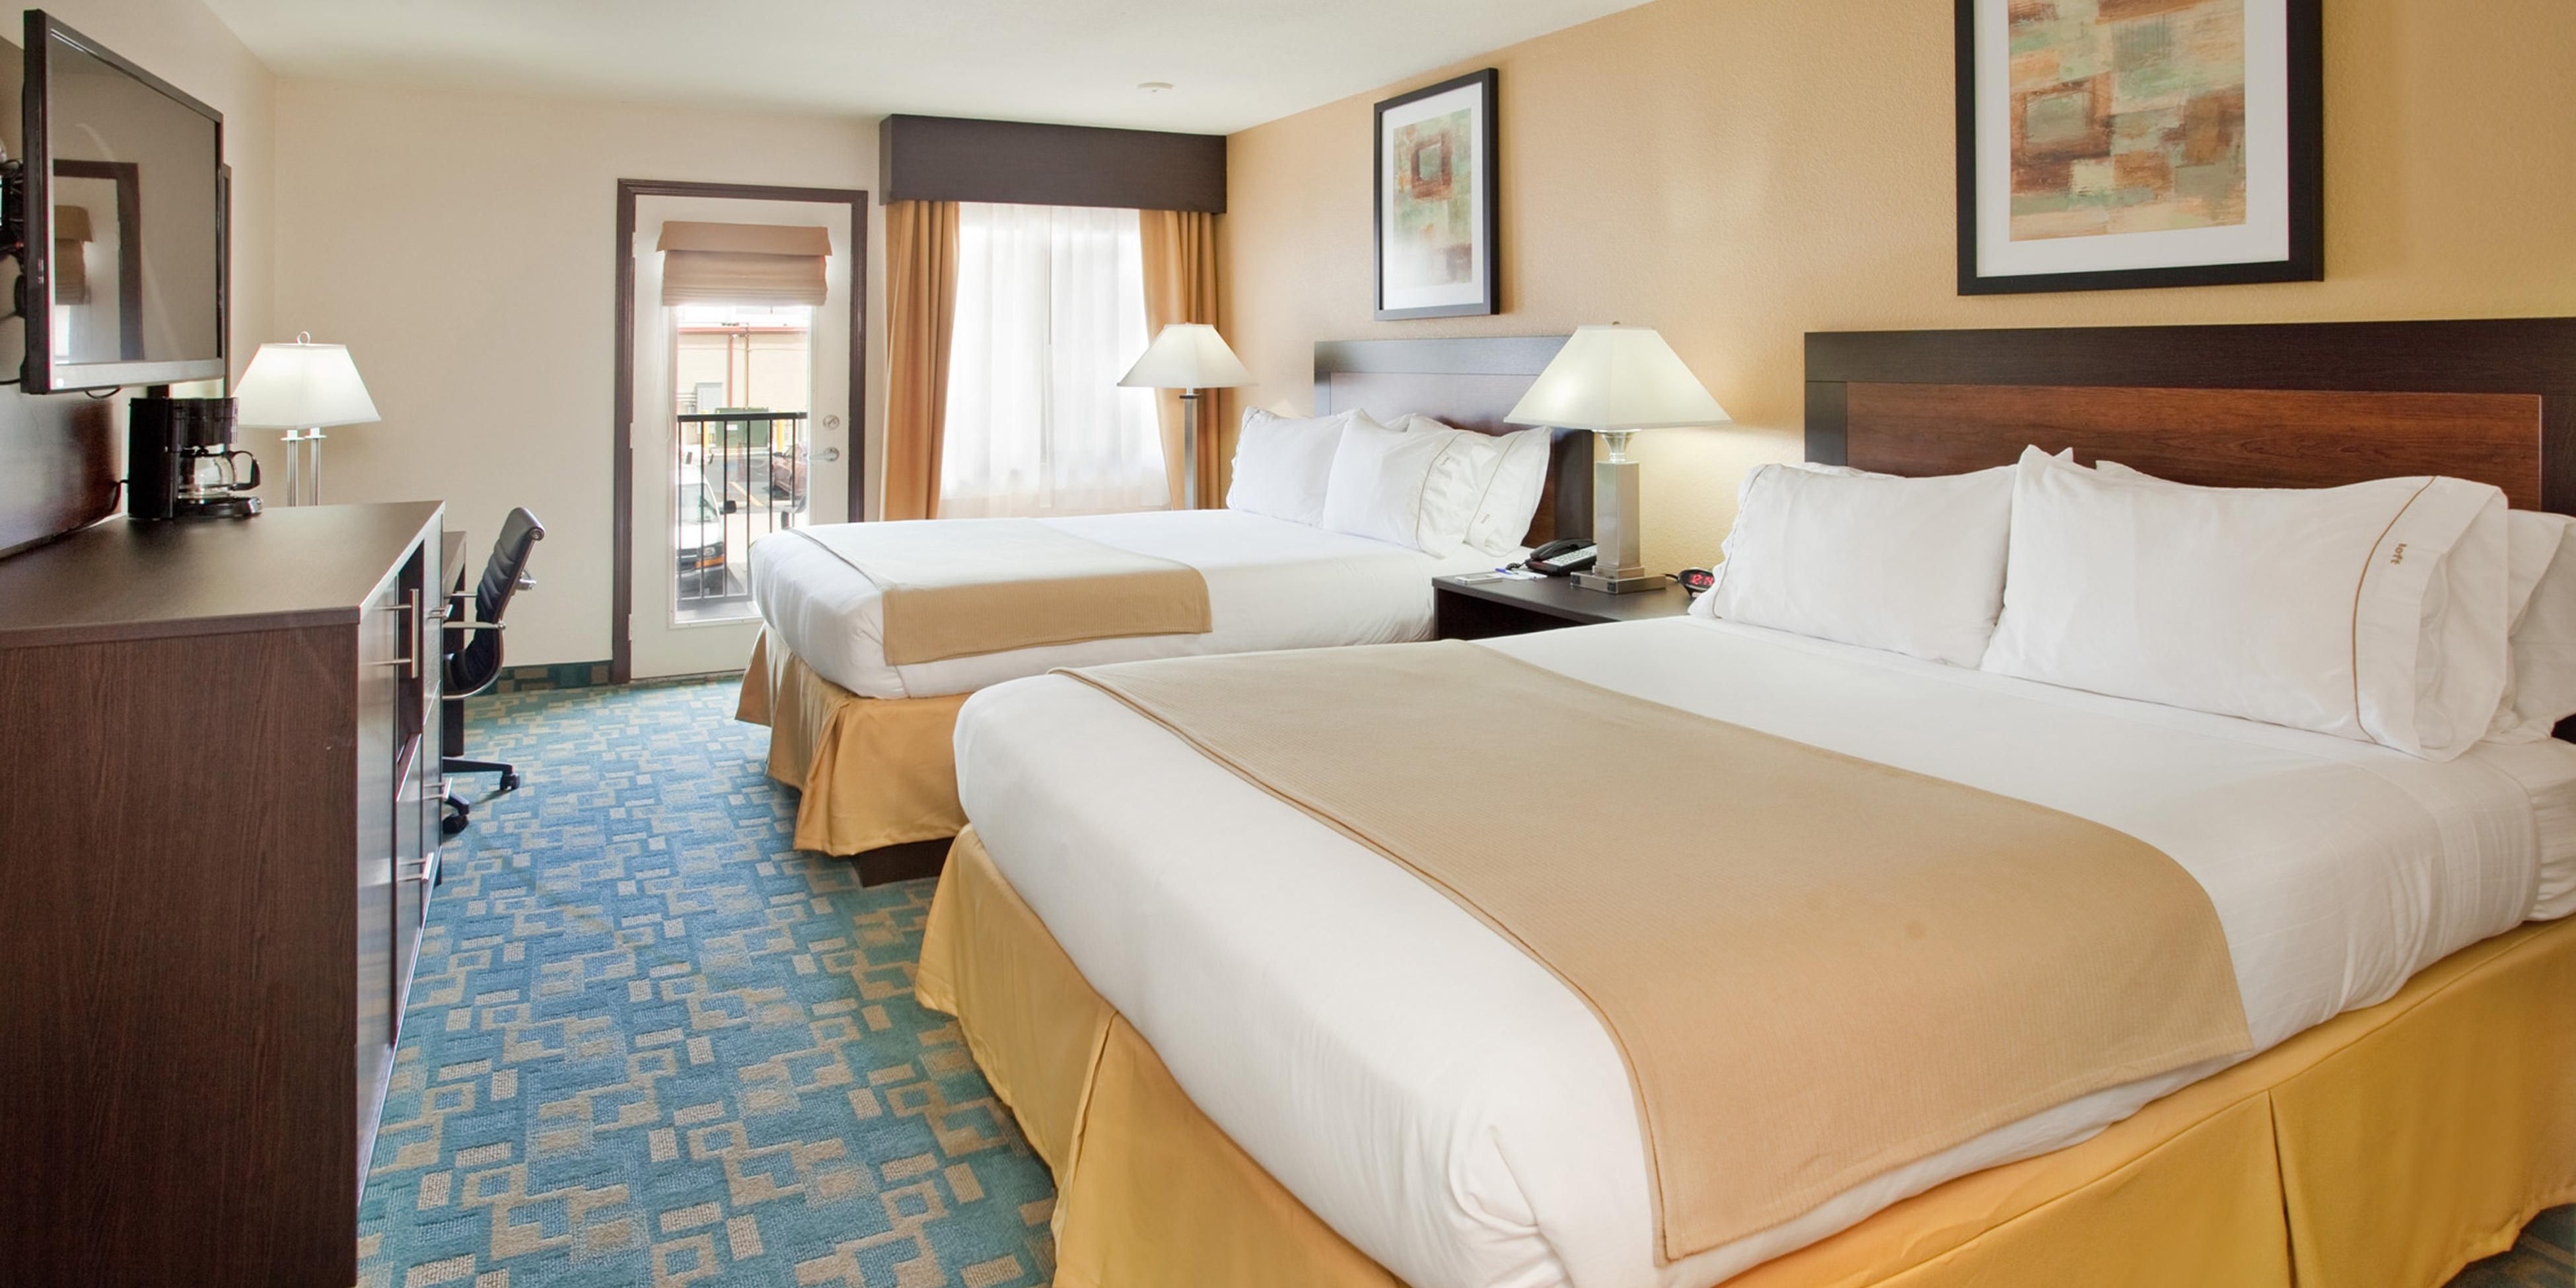 Holiday Inn Express & Suites Branson 76 Central Hotel by IHG